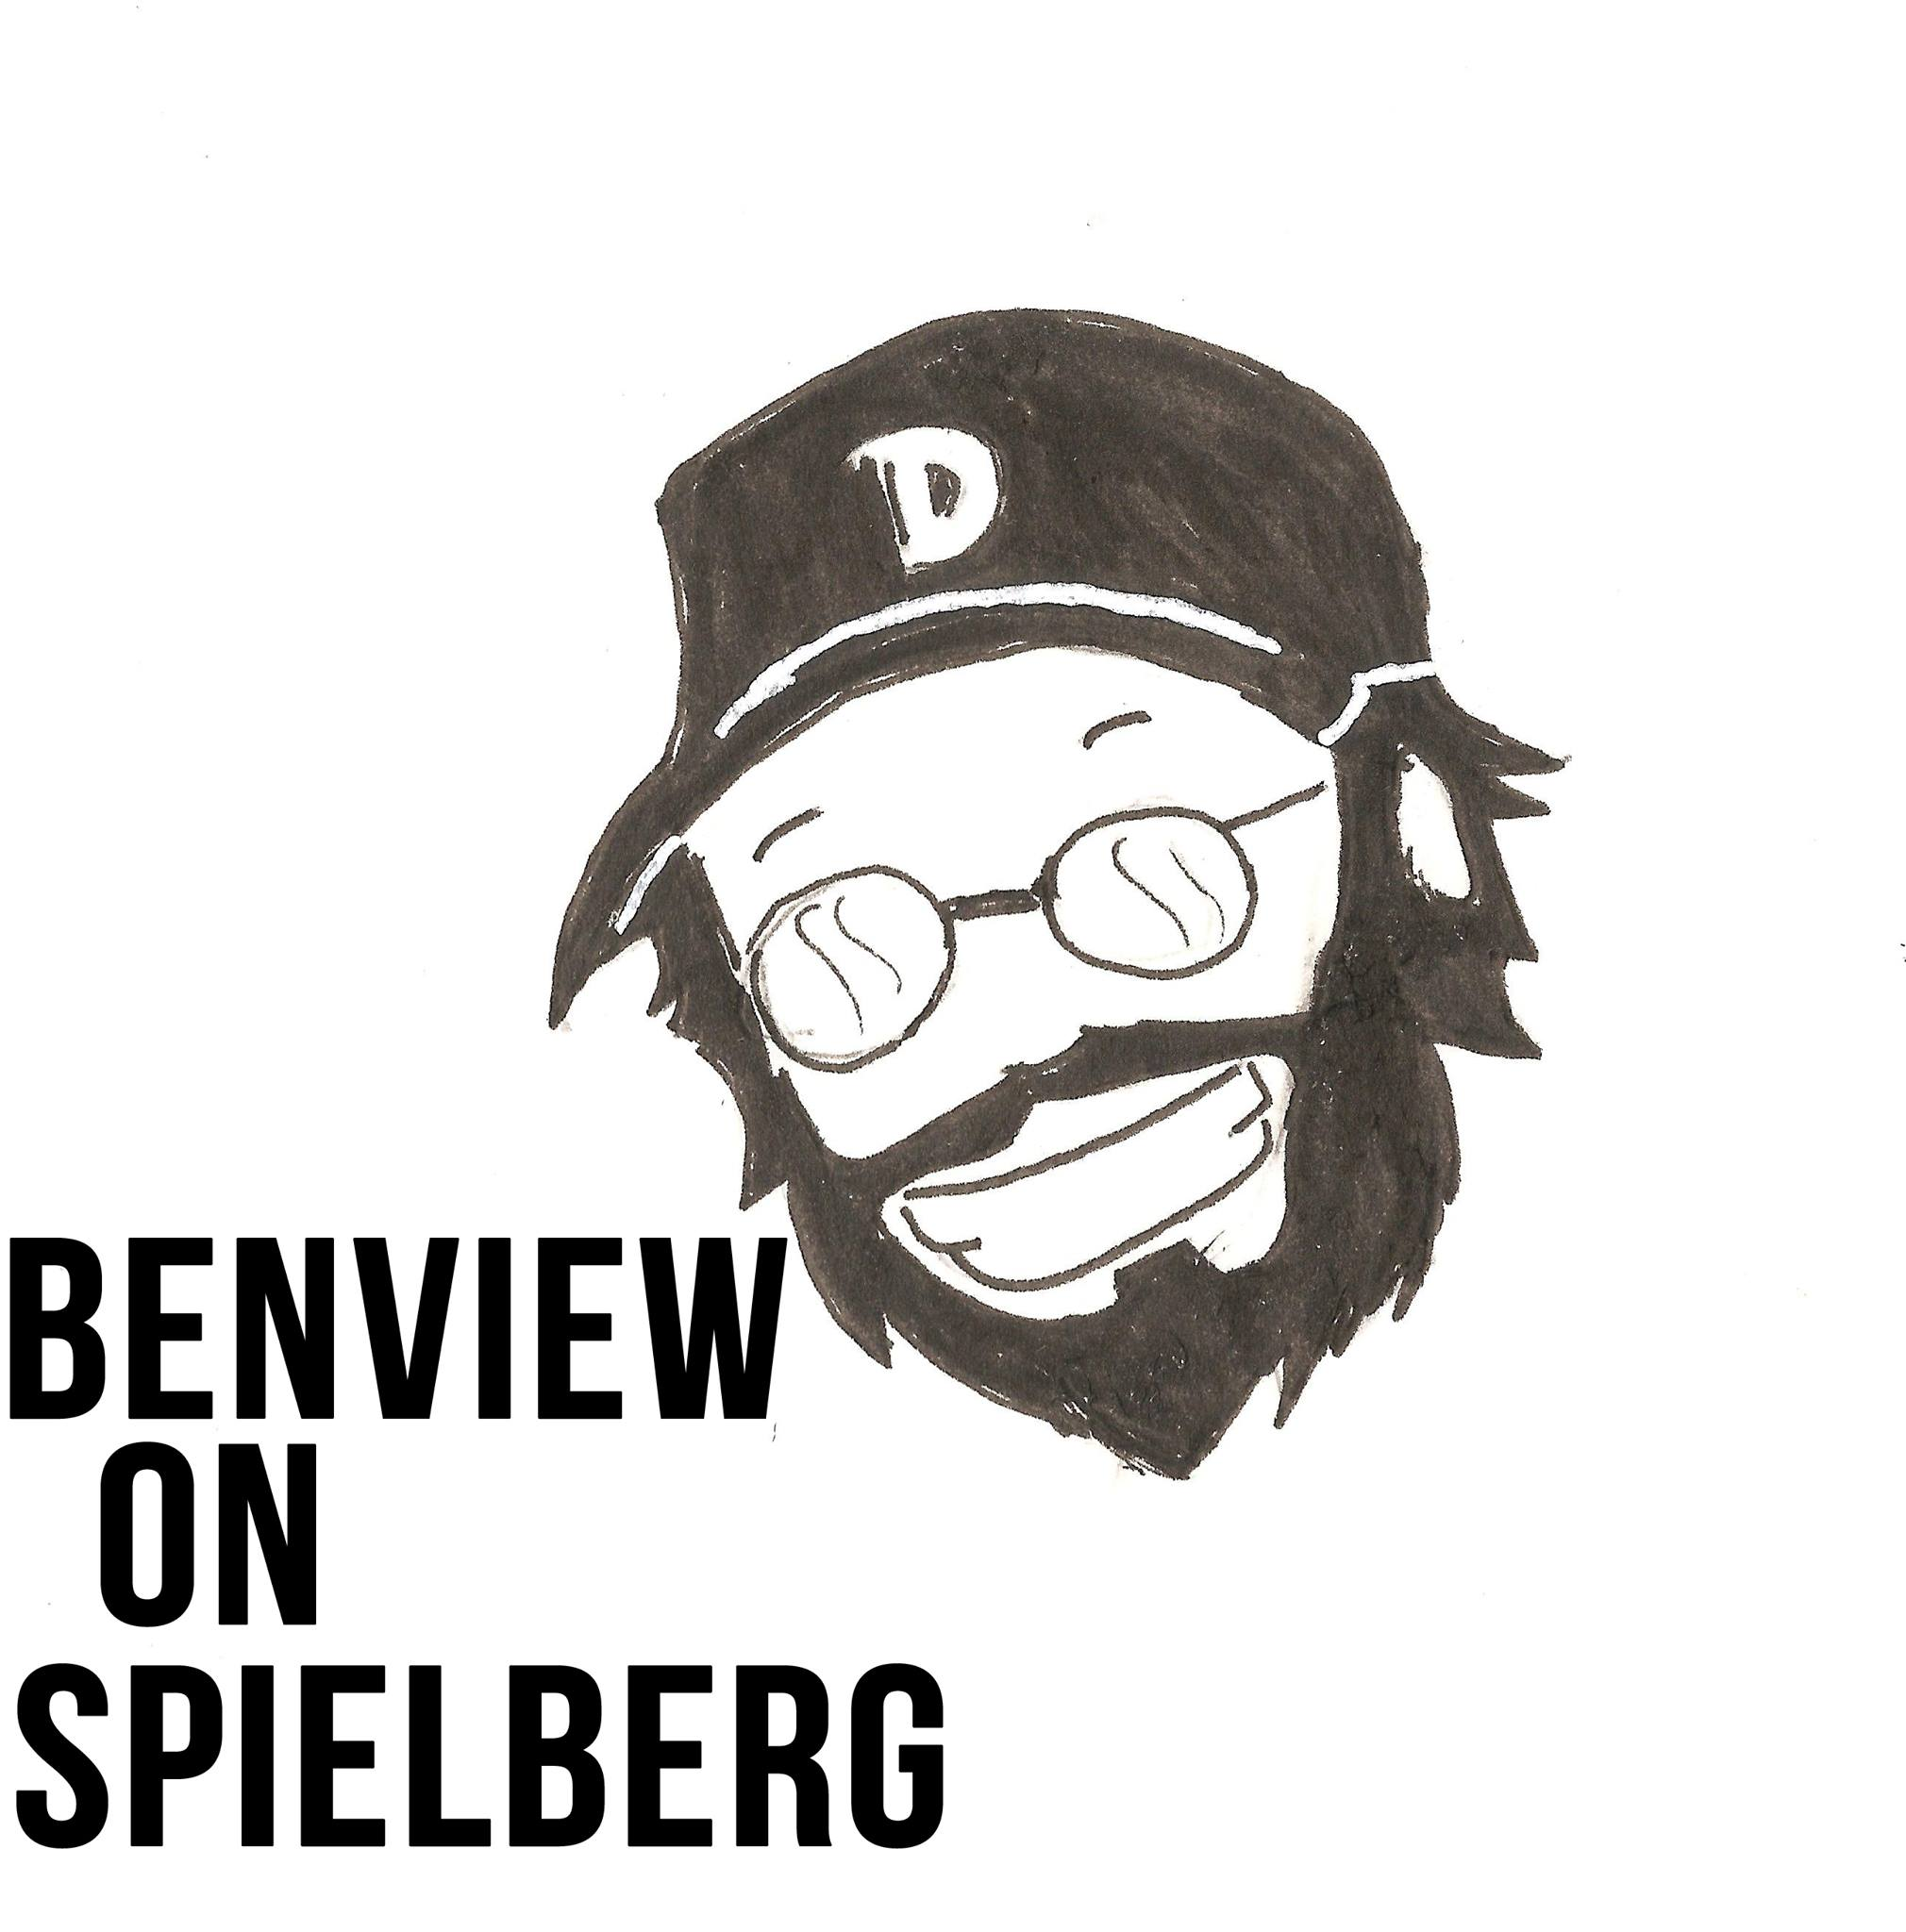 Benview on Spielberg.jpg